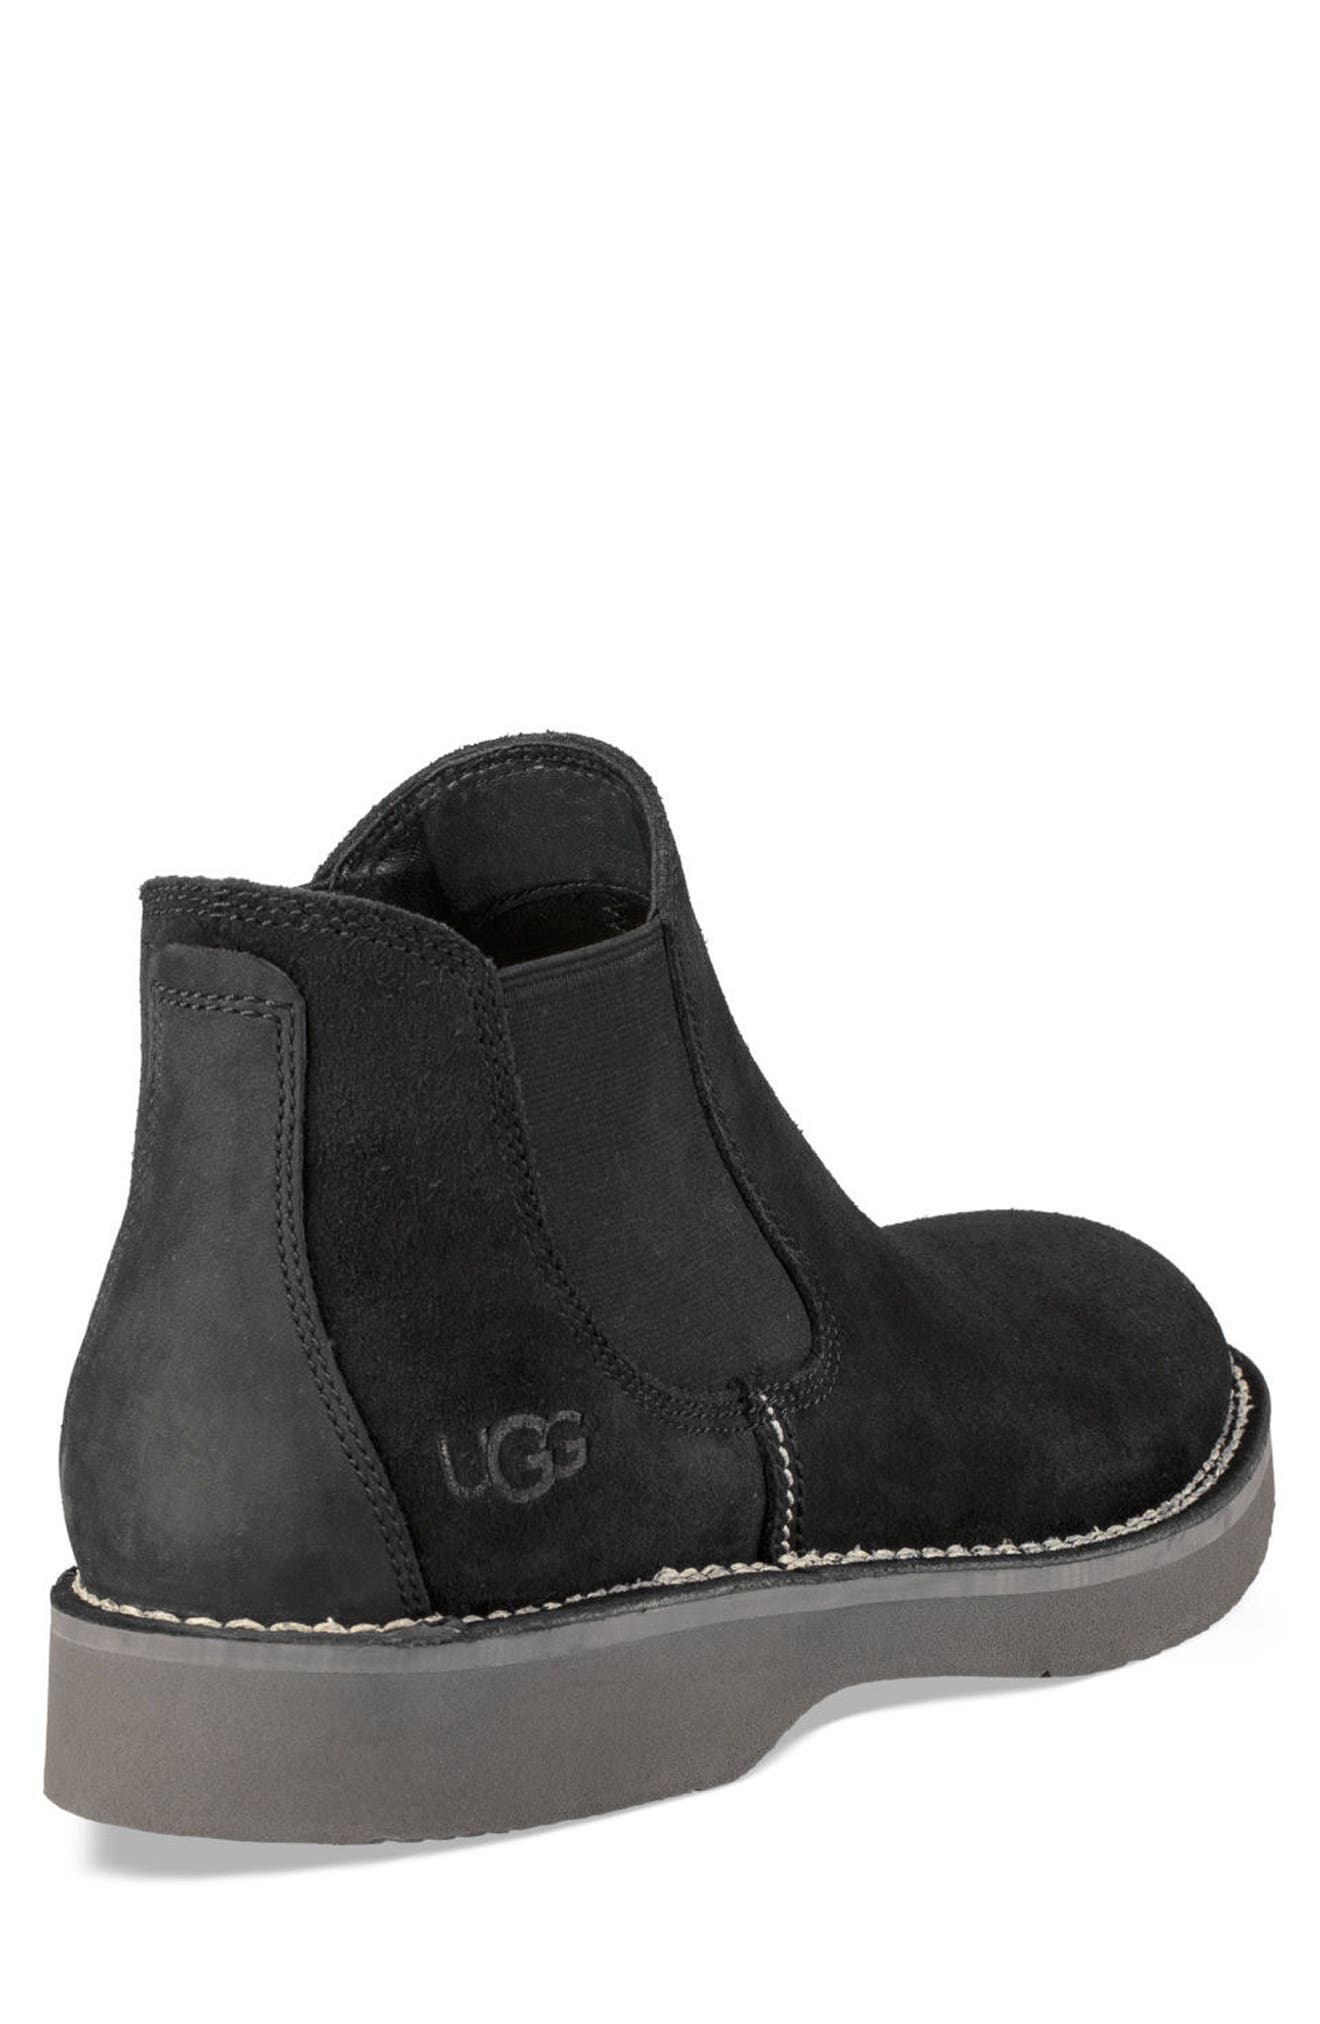 Camino Chelsea Boot,                             Alternate thumbnail 2, color,                             BLACK